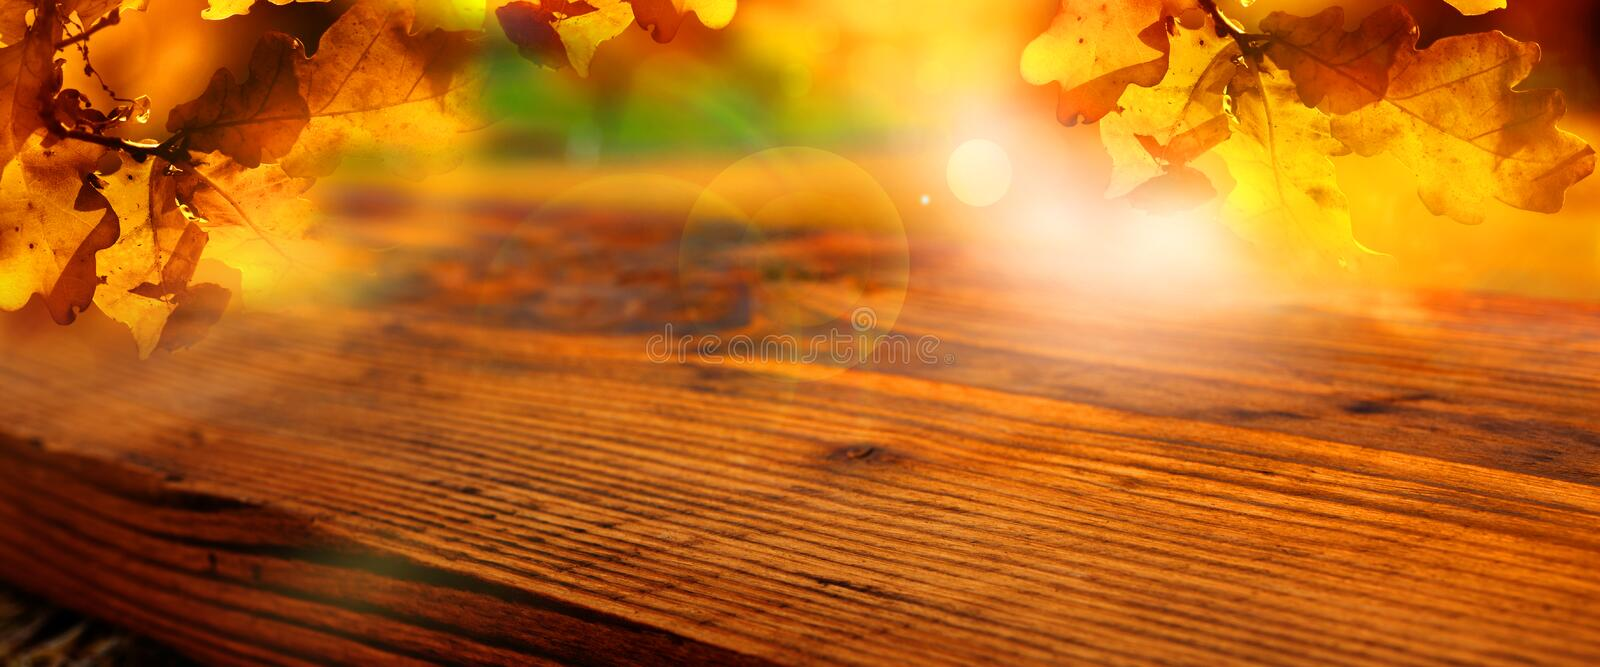 Sunny autumn leaves with wooden table stock photo